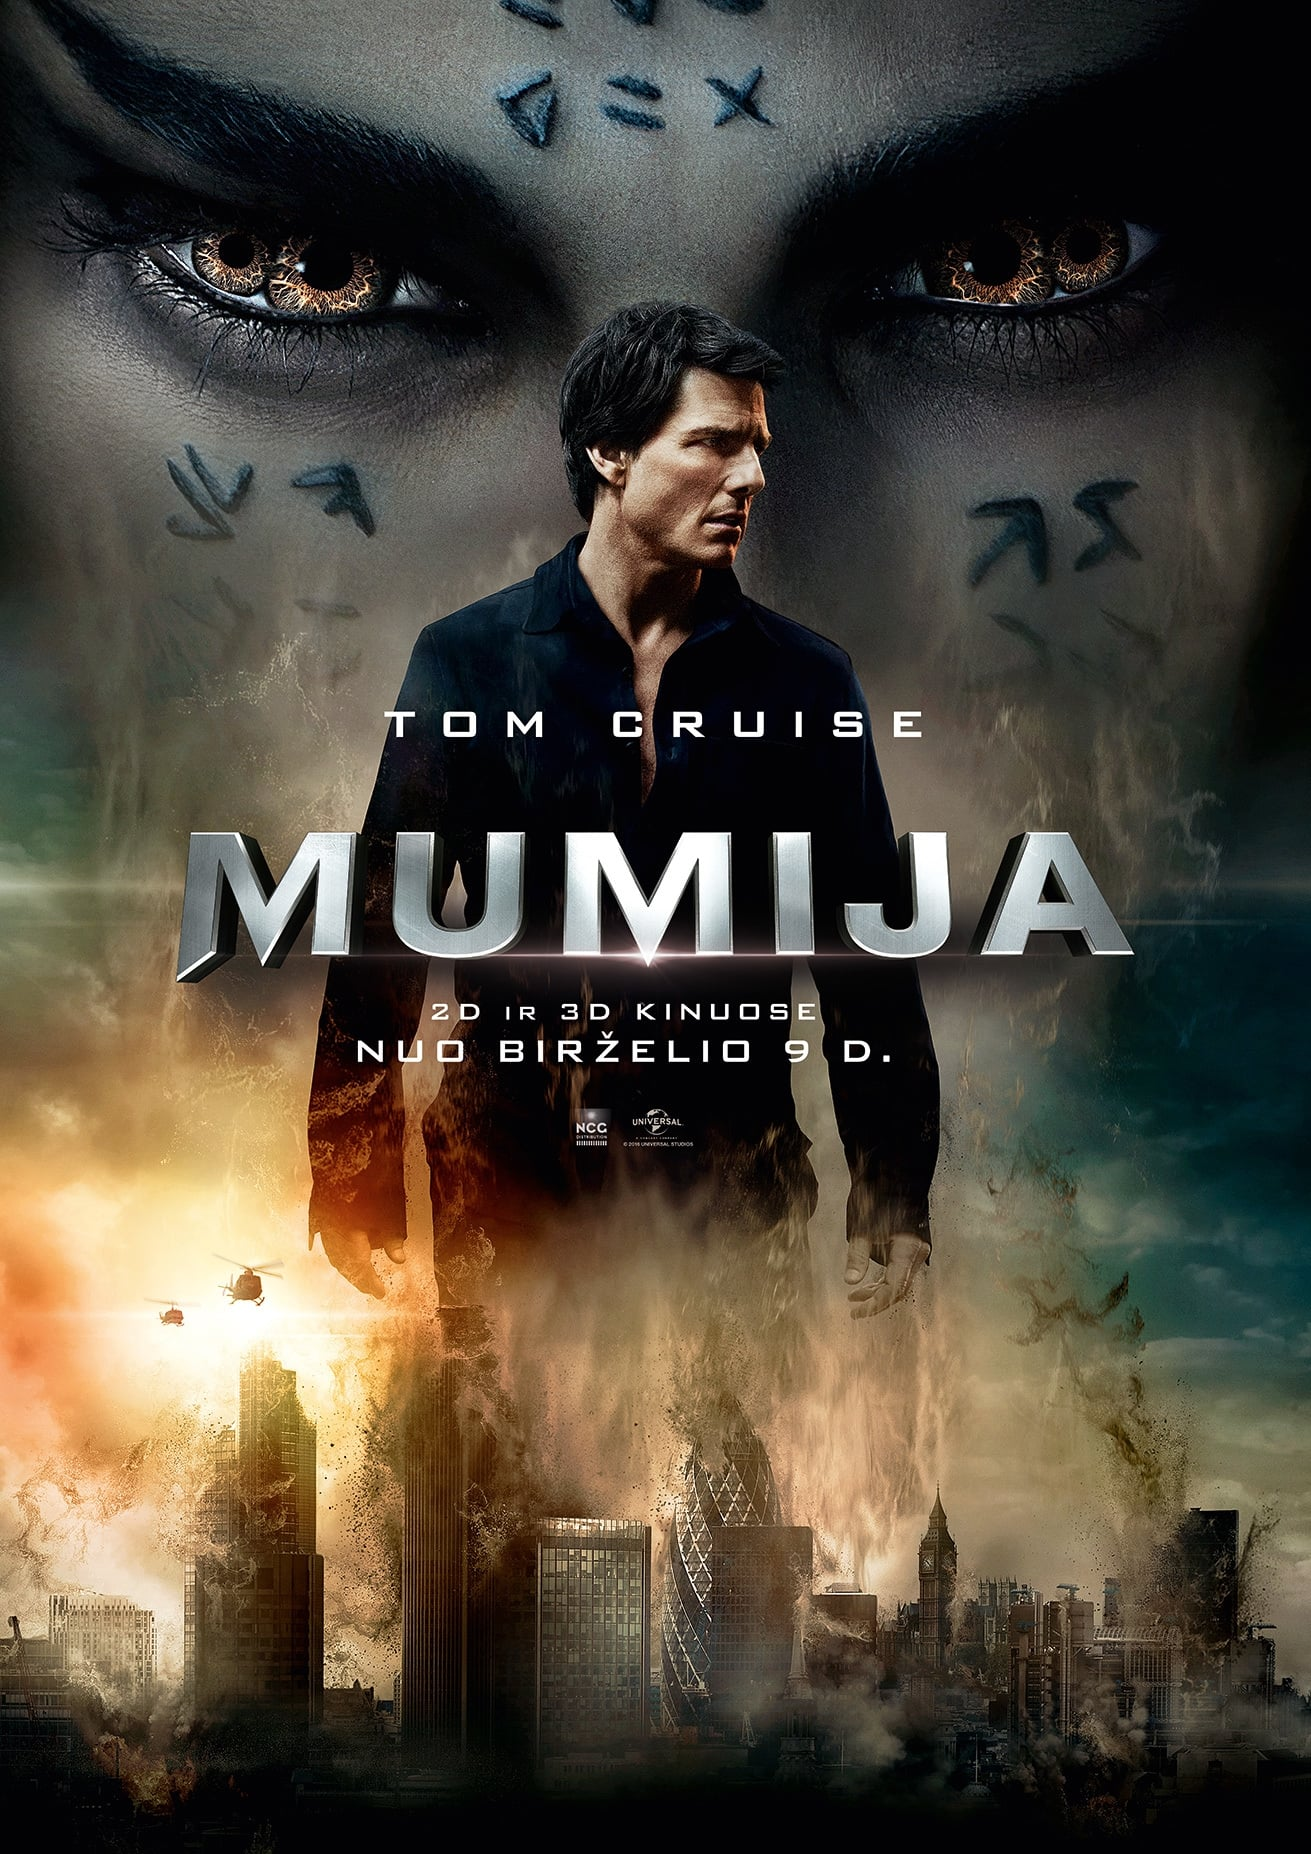 Mumija / The Mummy (2017)